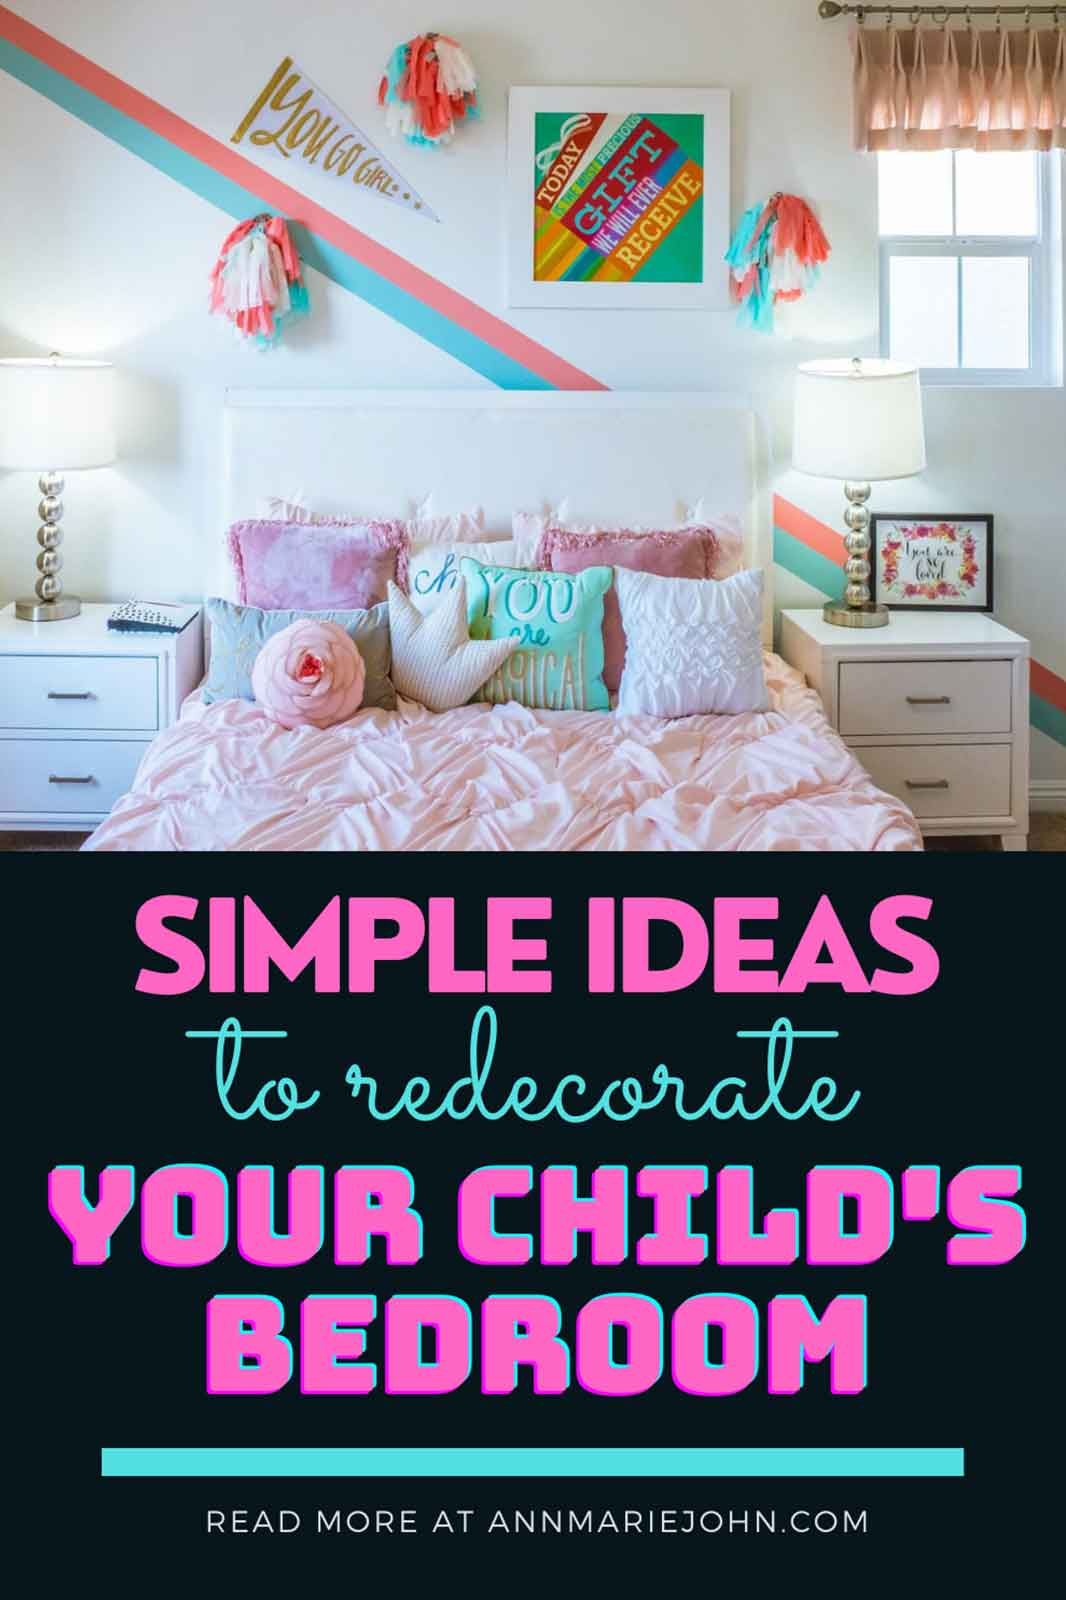 Simple Ideas to Redecorate Your Child's Bedroom